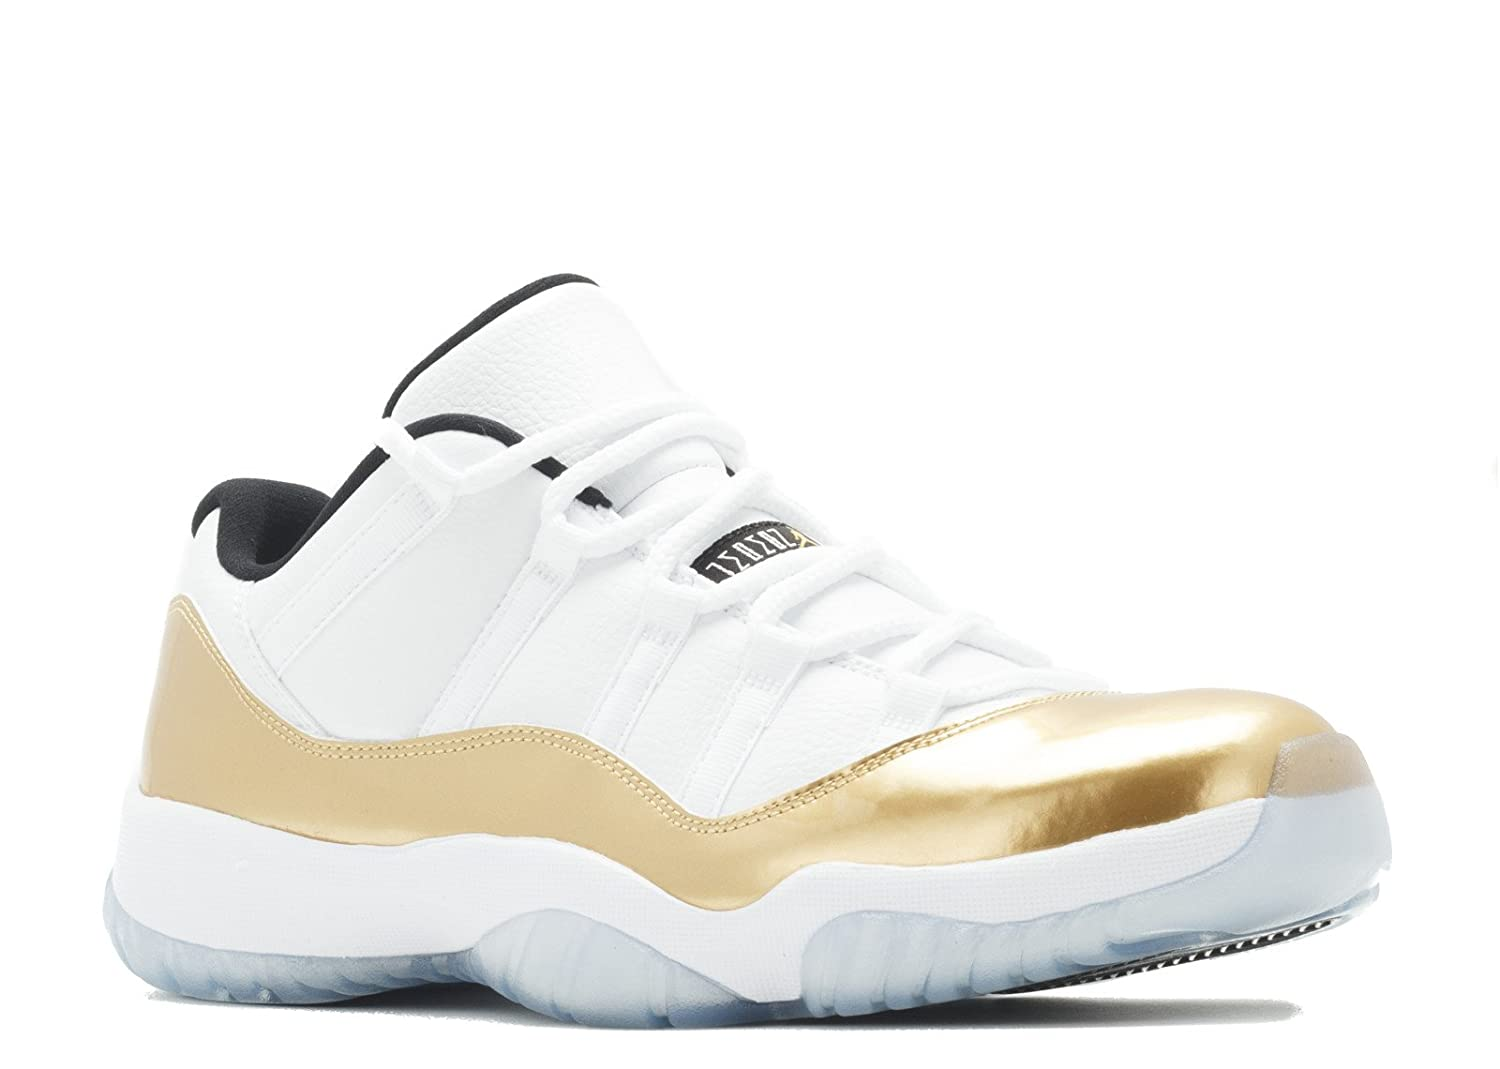 new authentic pretty cool high fashion Jordan AIR 11 Retro Low 'White/Metallic Gold' Closing Ceremony August 27  2016 Release Men's Shoe Size